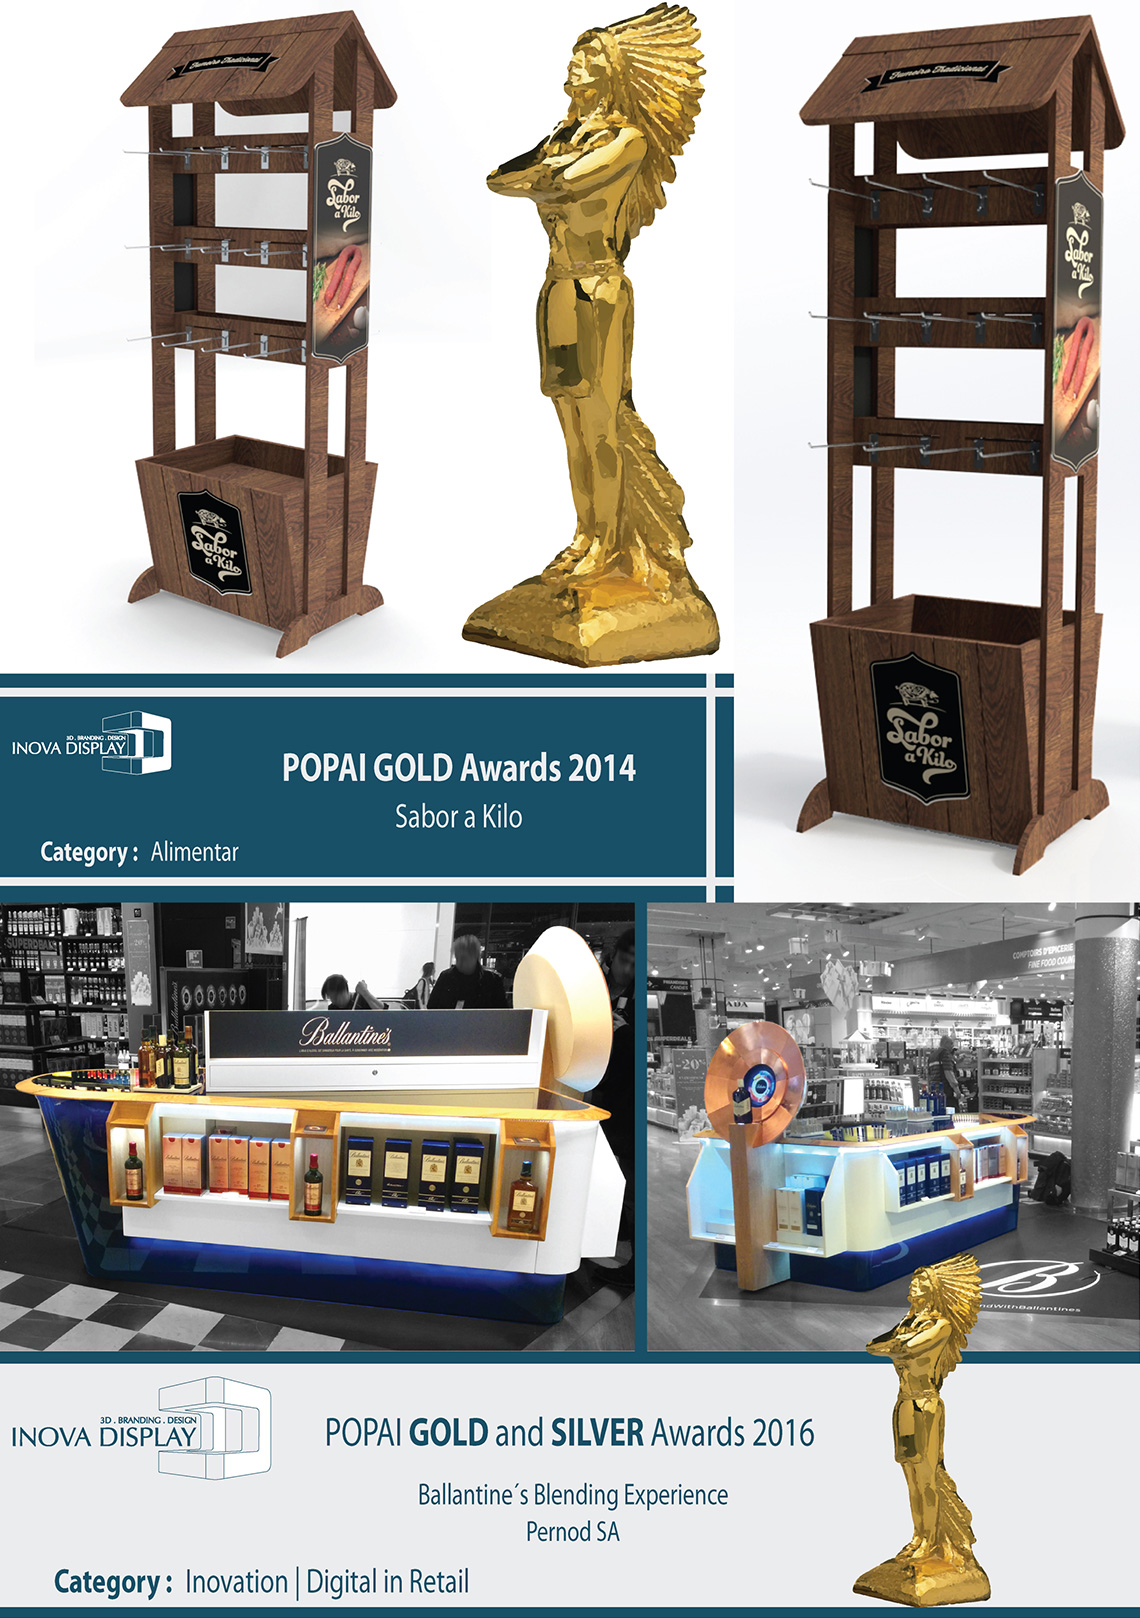 POPAI GOLD Awards 2014  - Sabor a Kilo